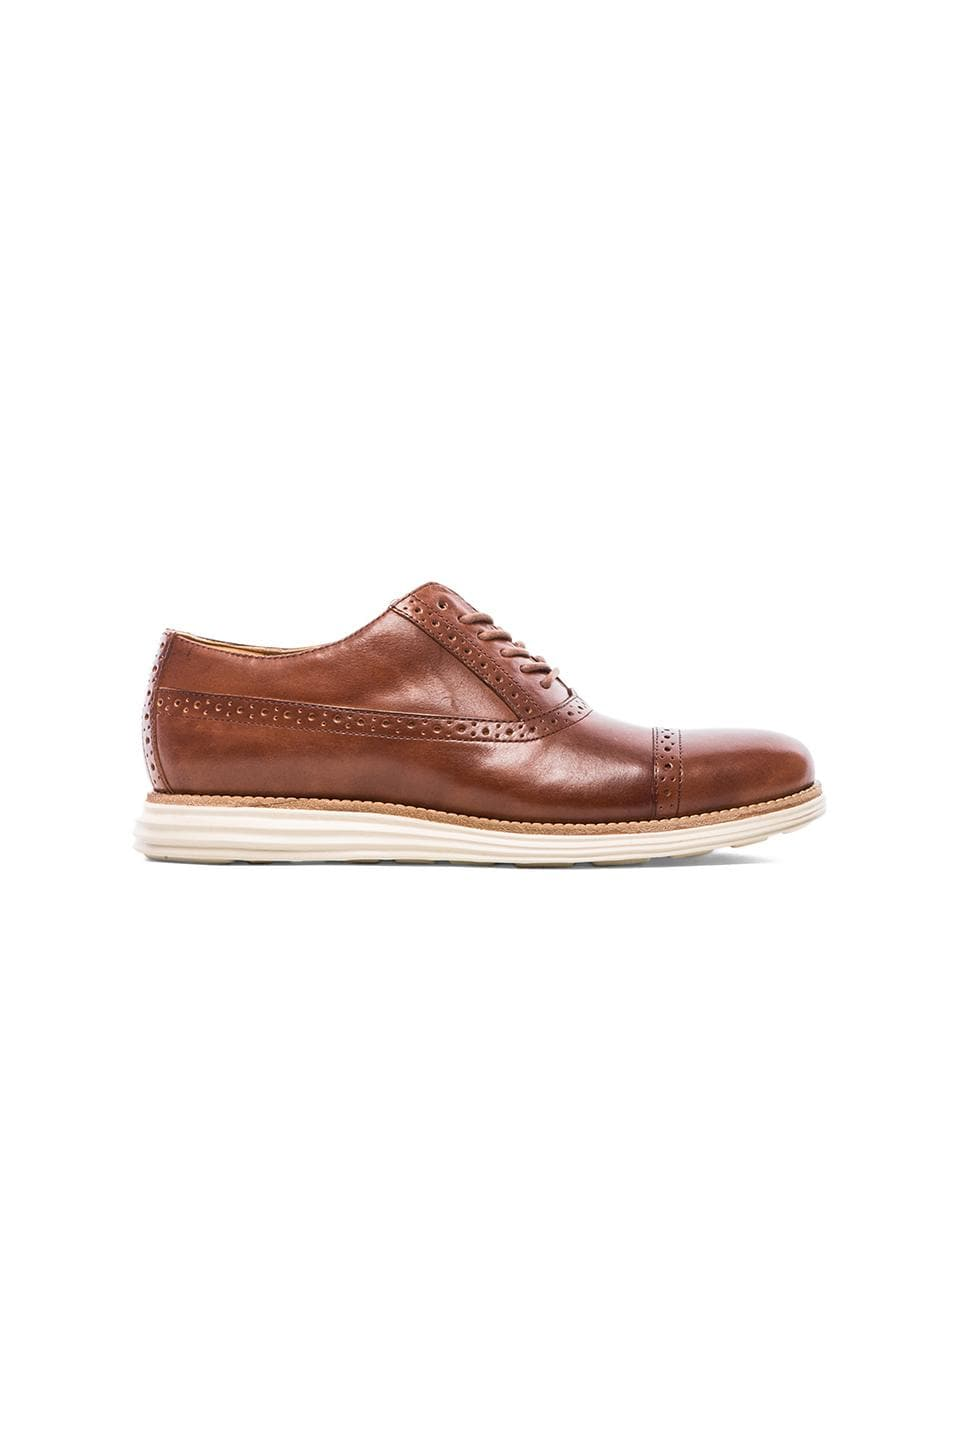 Cole Haan Lunargrand Cap Toe in Woodbury